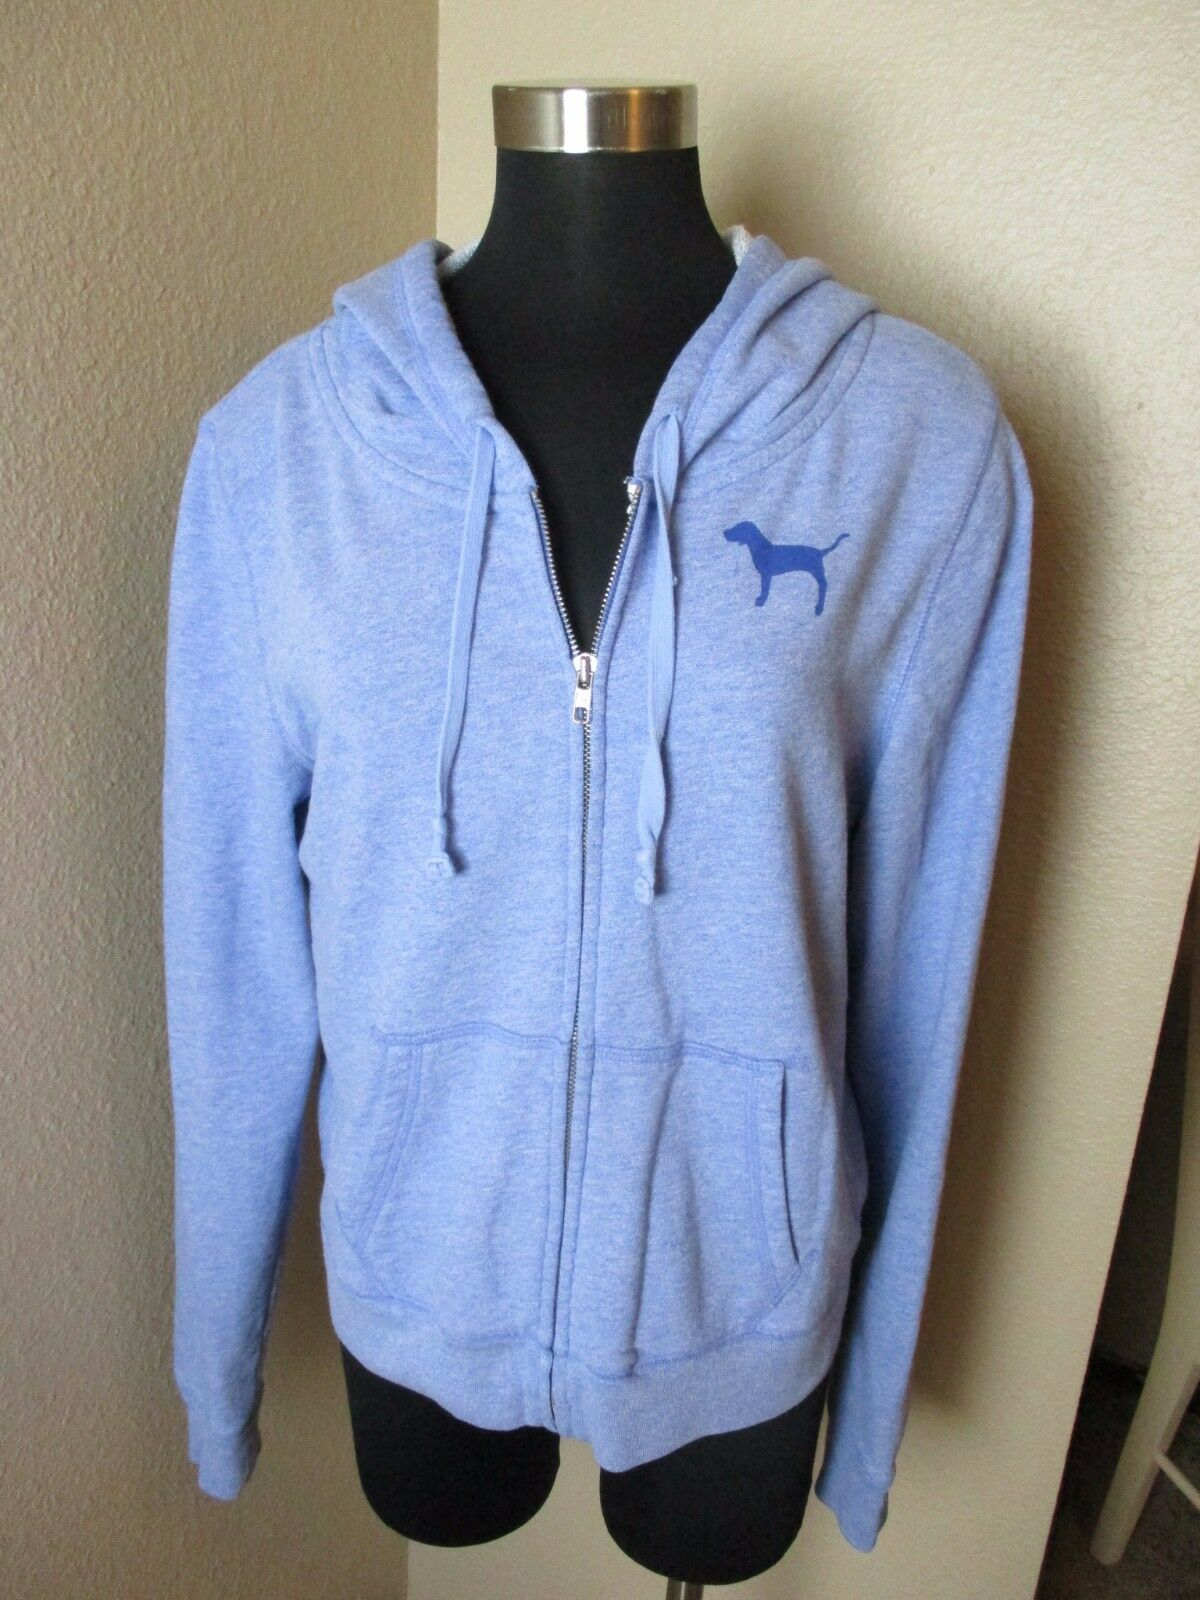 Victorias Secret Pink Zip Front Hoodie 1986 Womens bluee bluee bluee Size Large L 74cc3a